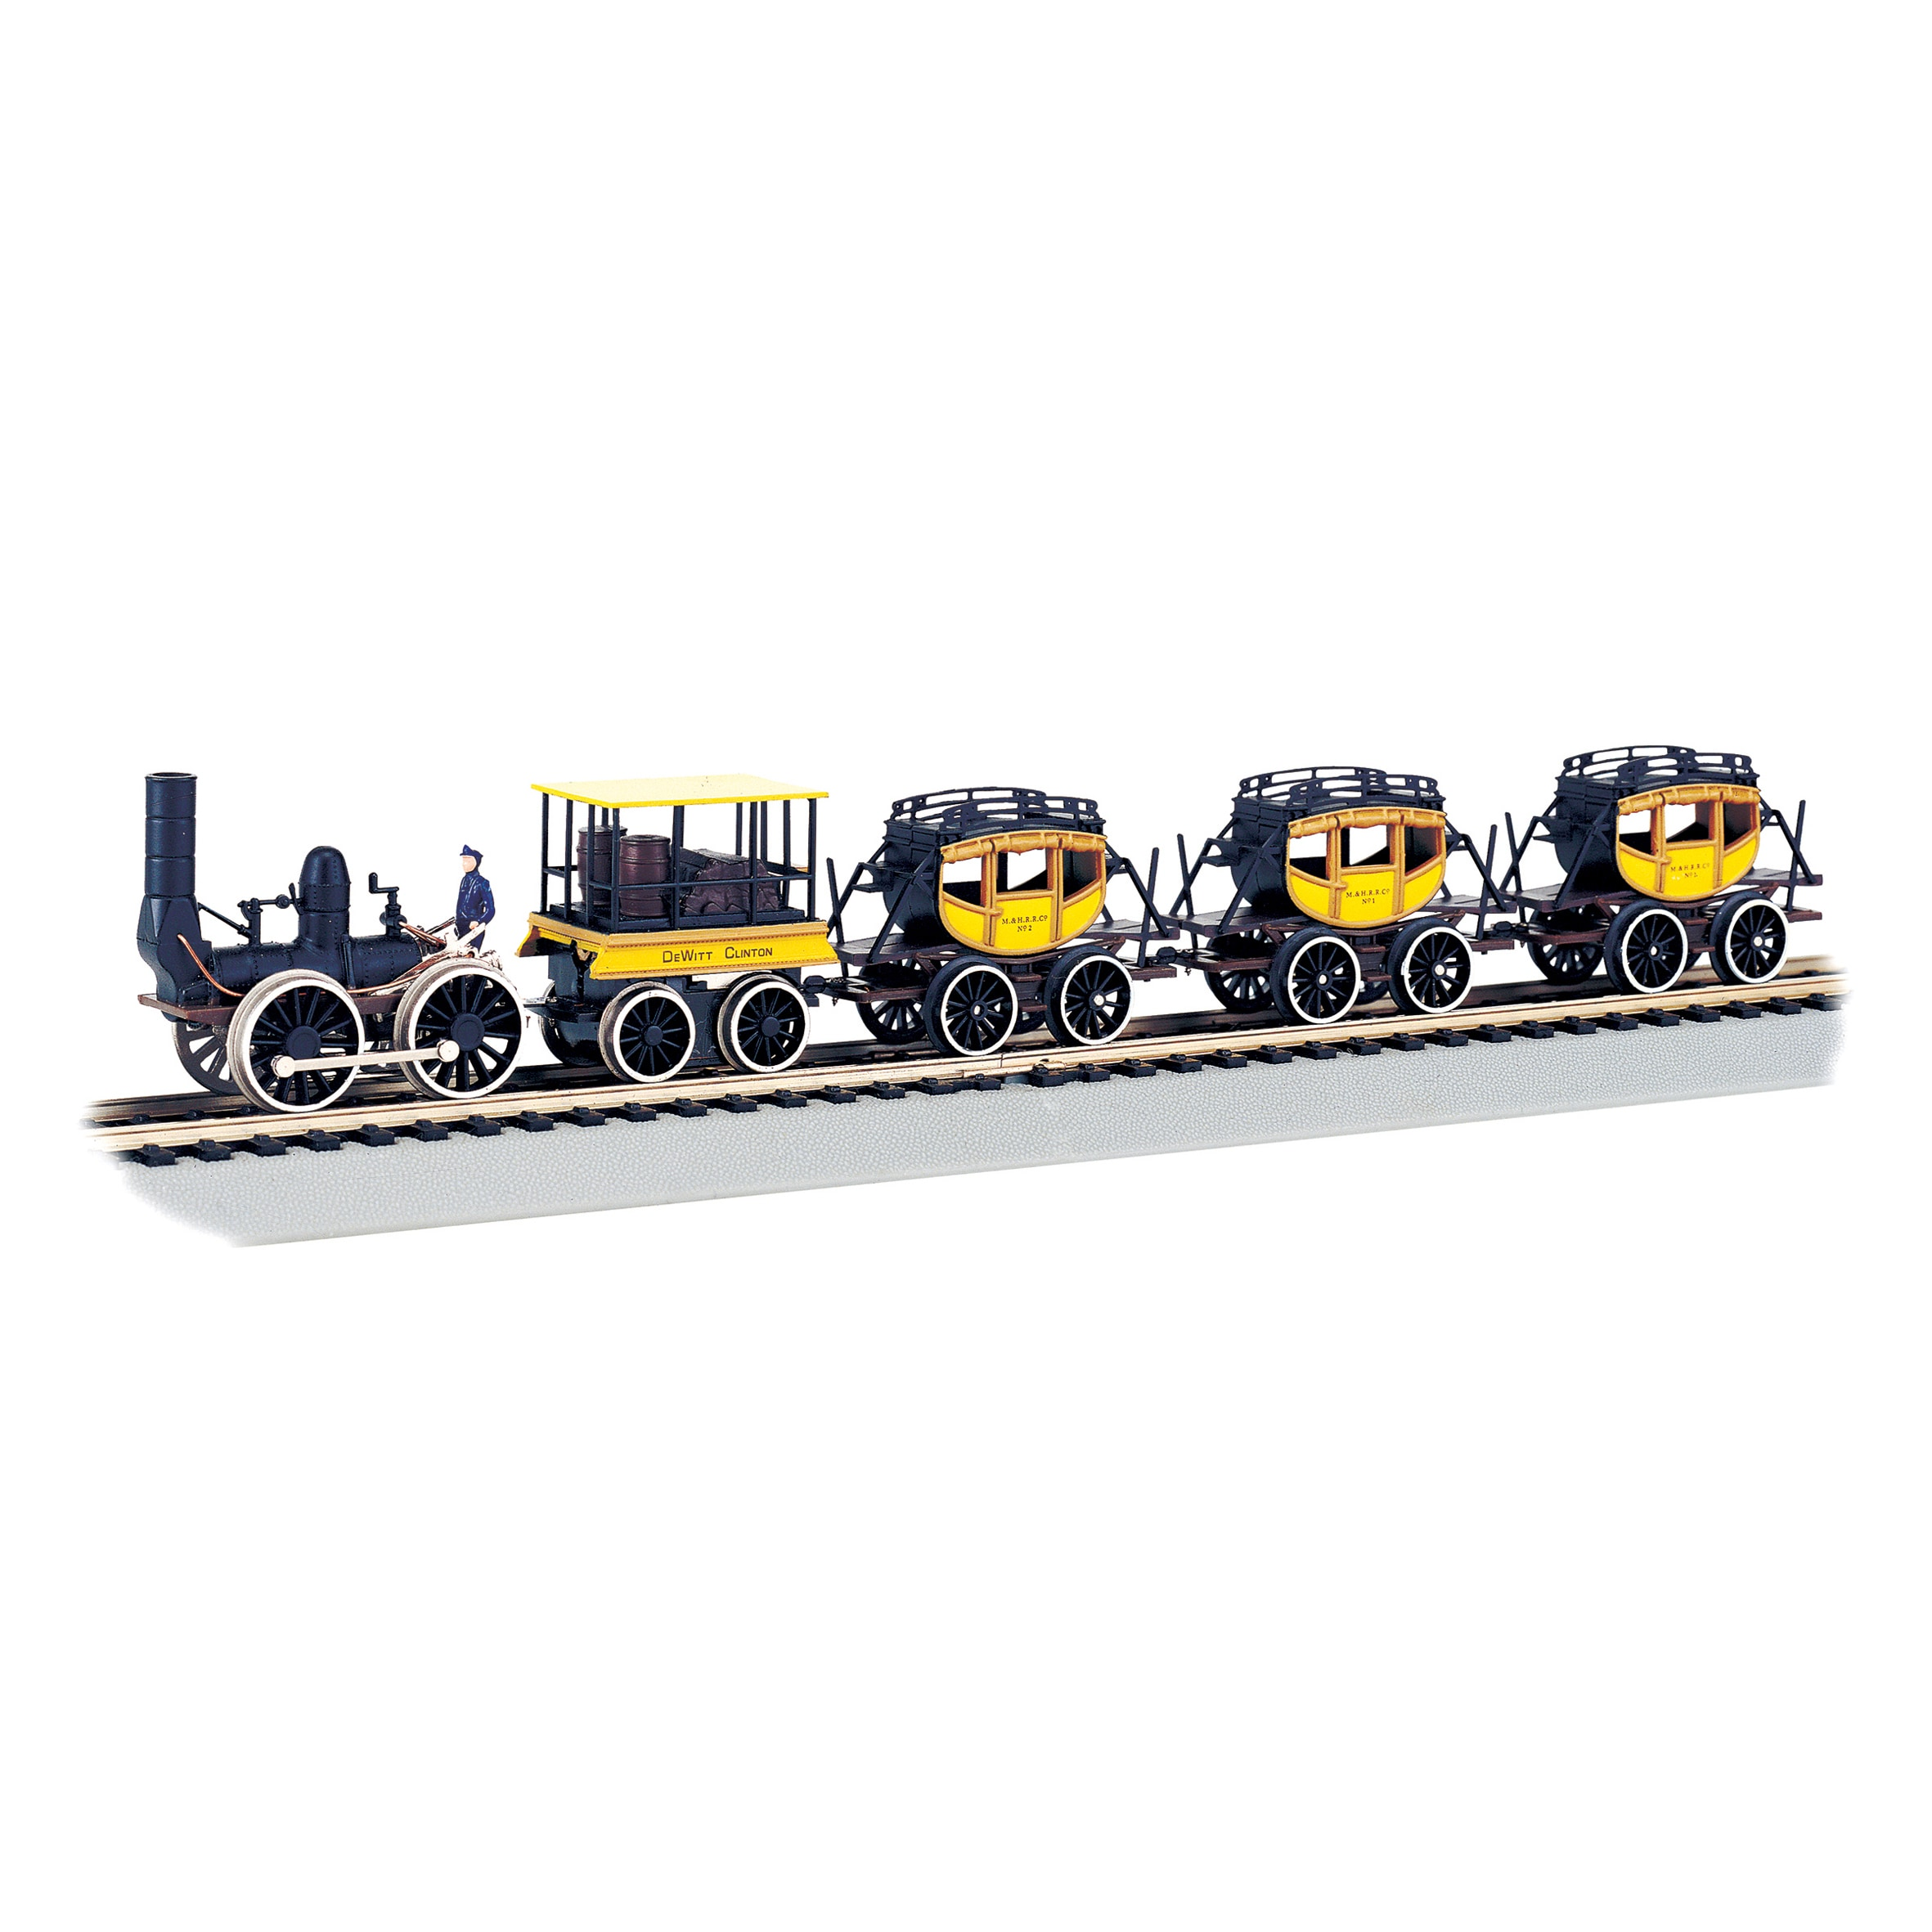 Bachmann Trains Dewitt Clinton HO Scale Ready To Run Elec...